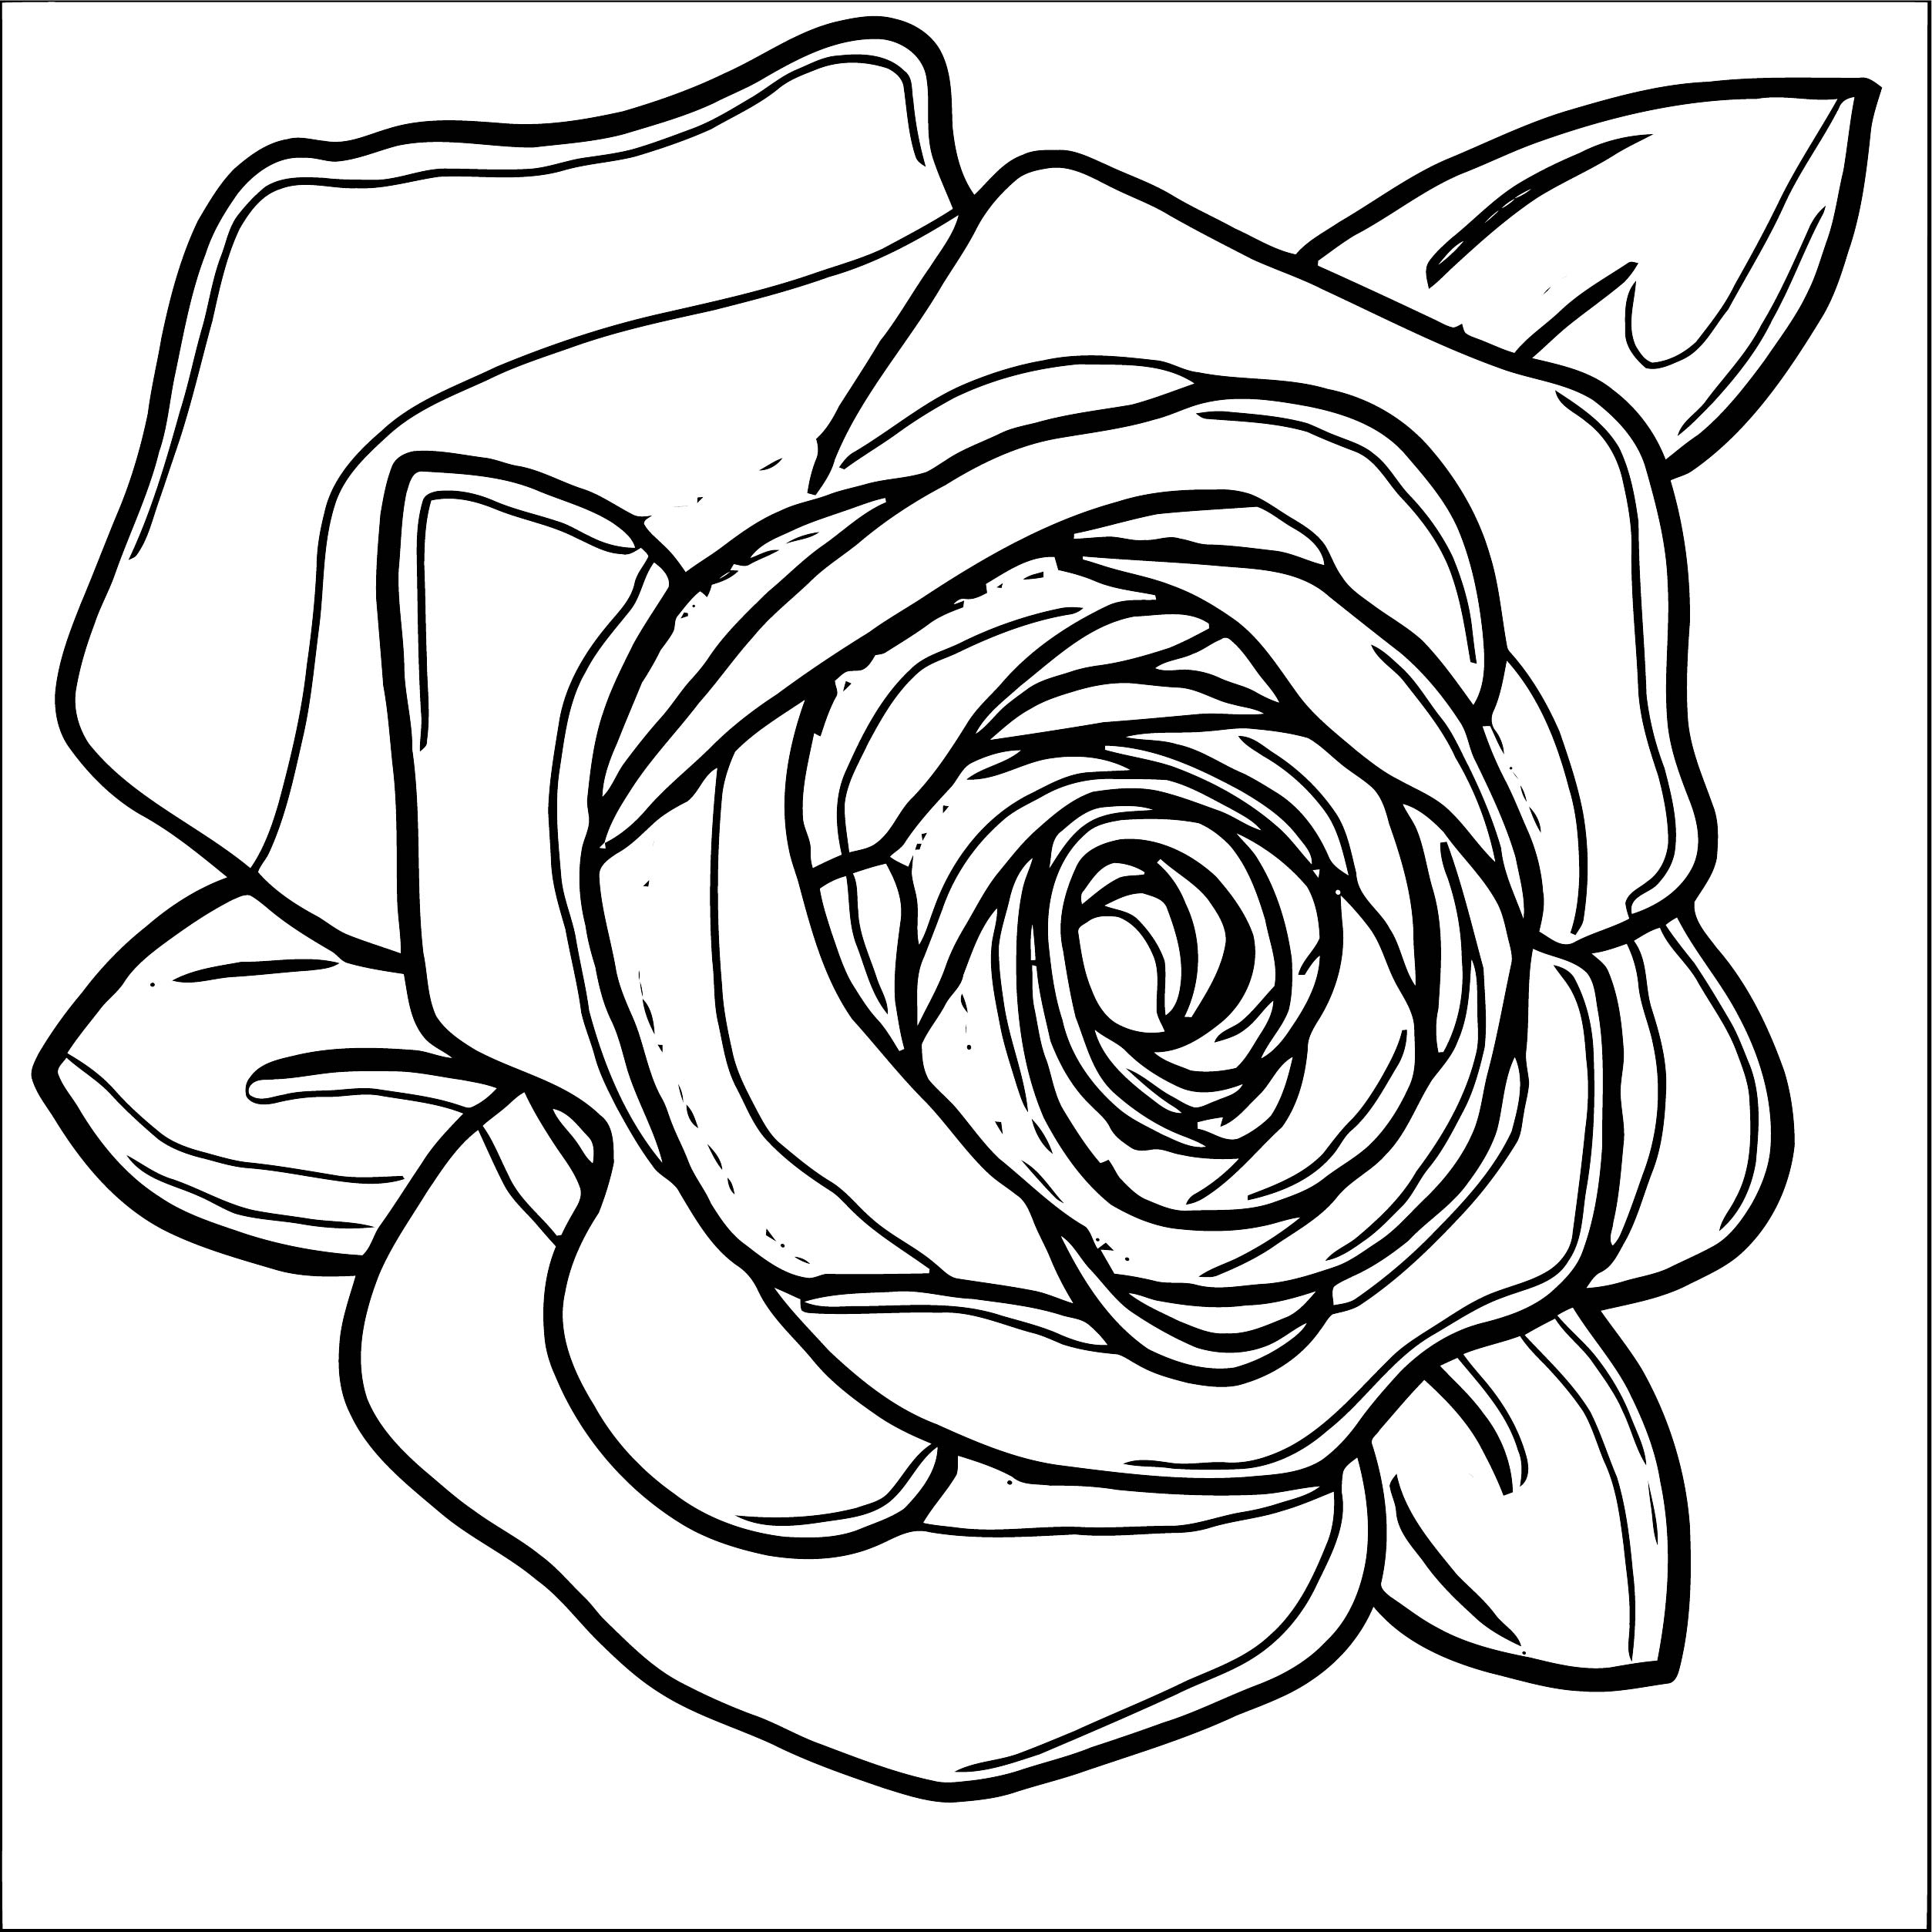 Rose Flower Coloring Page 011